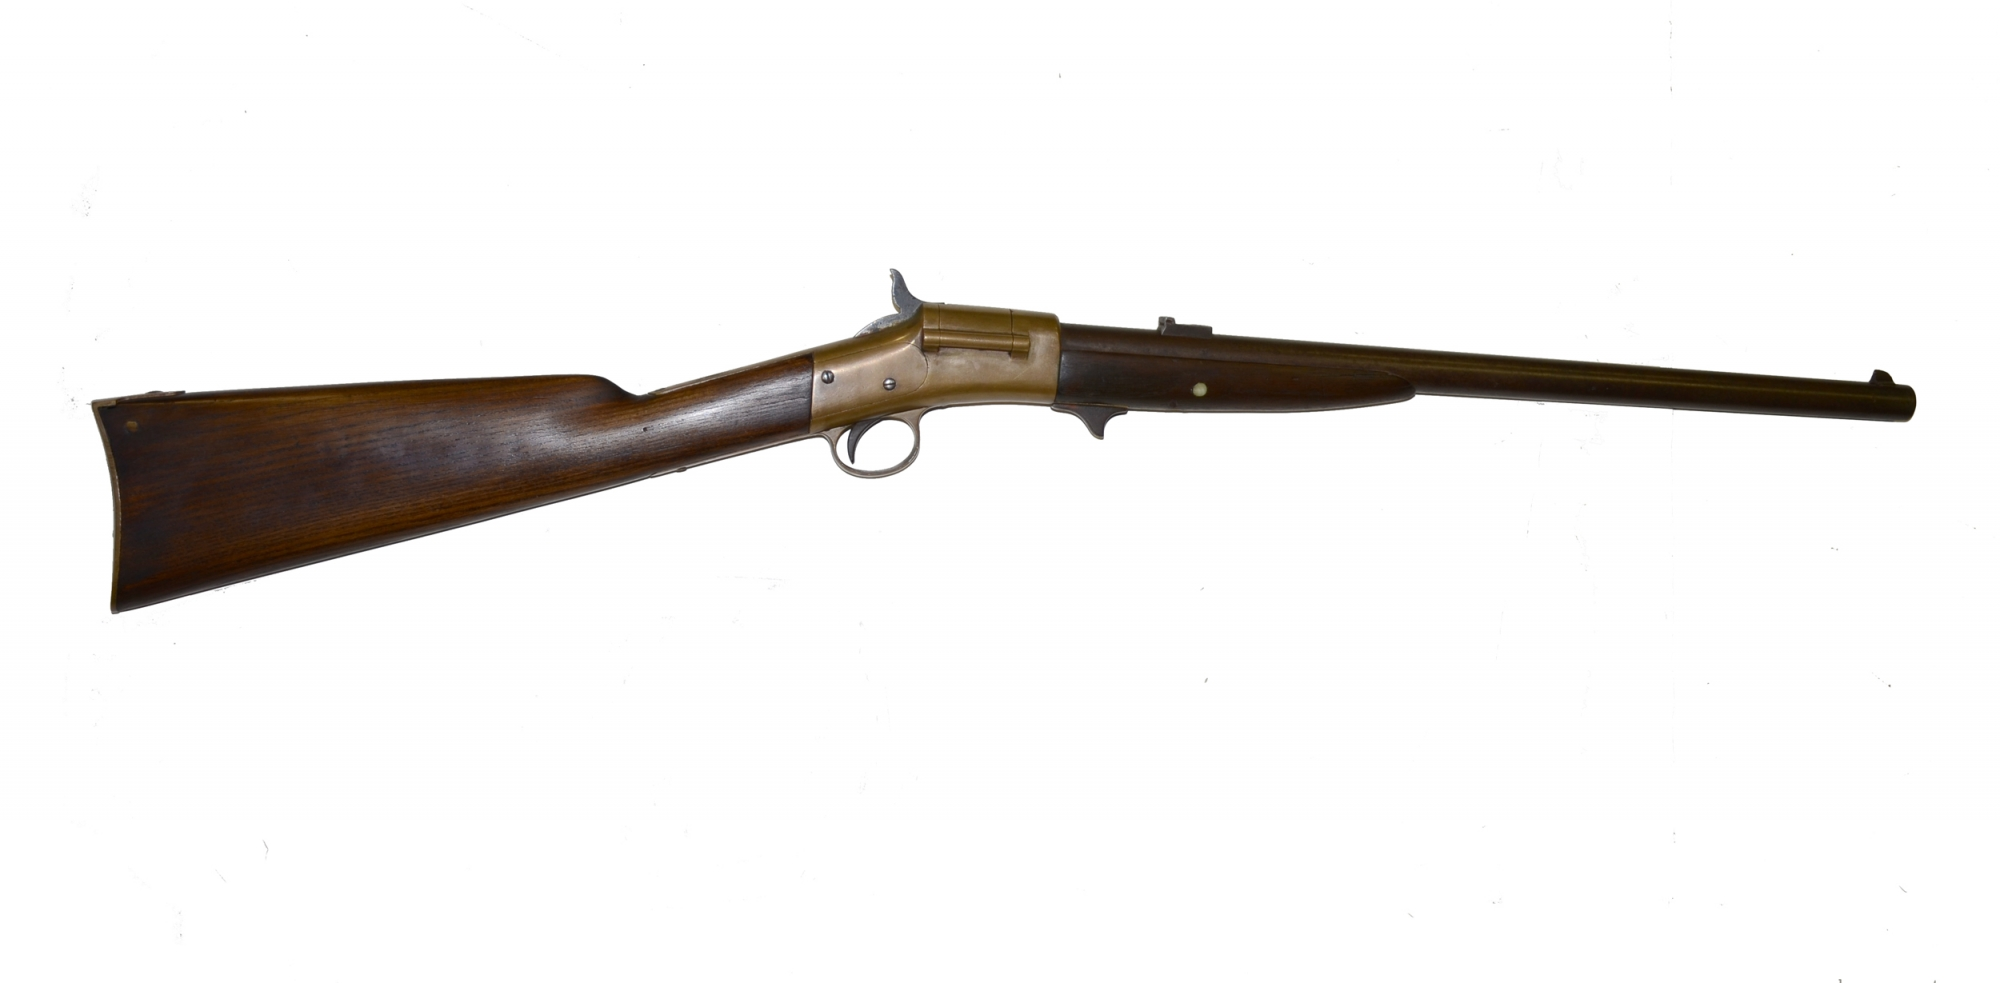 RARE WARNER SINGLE-SHOT BREECHLOADING CARBINE